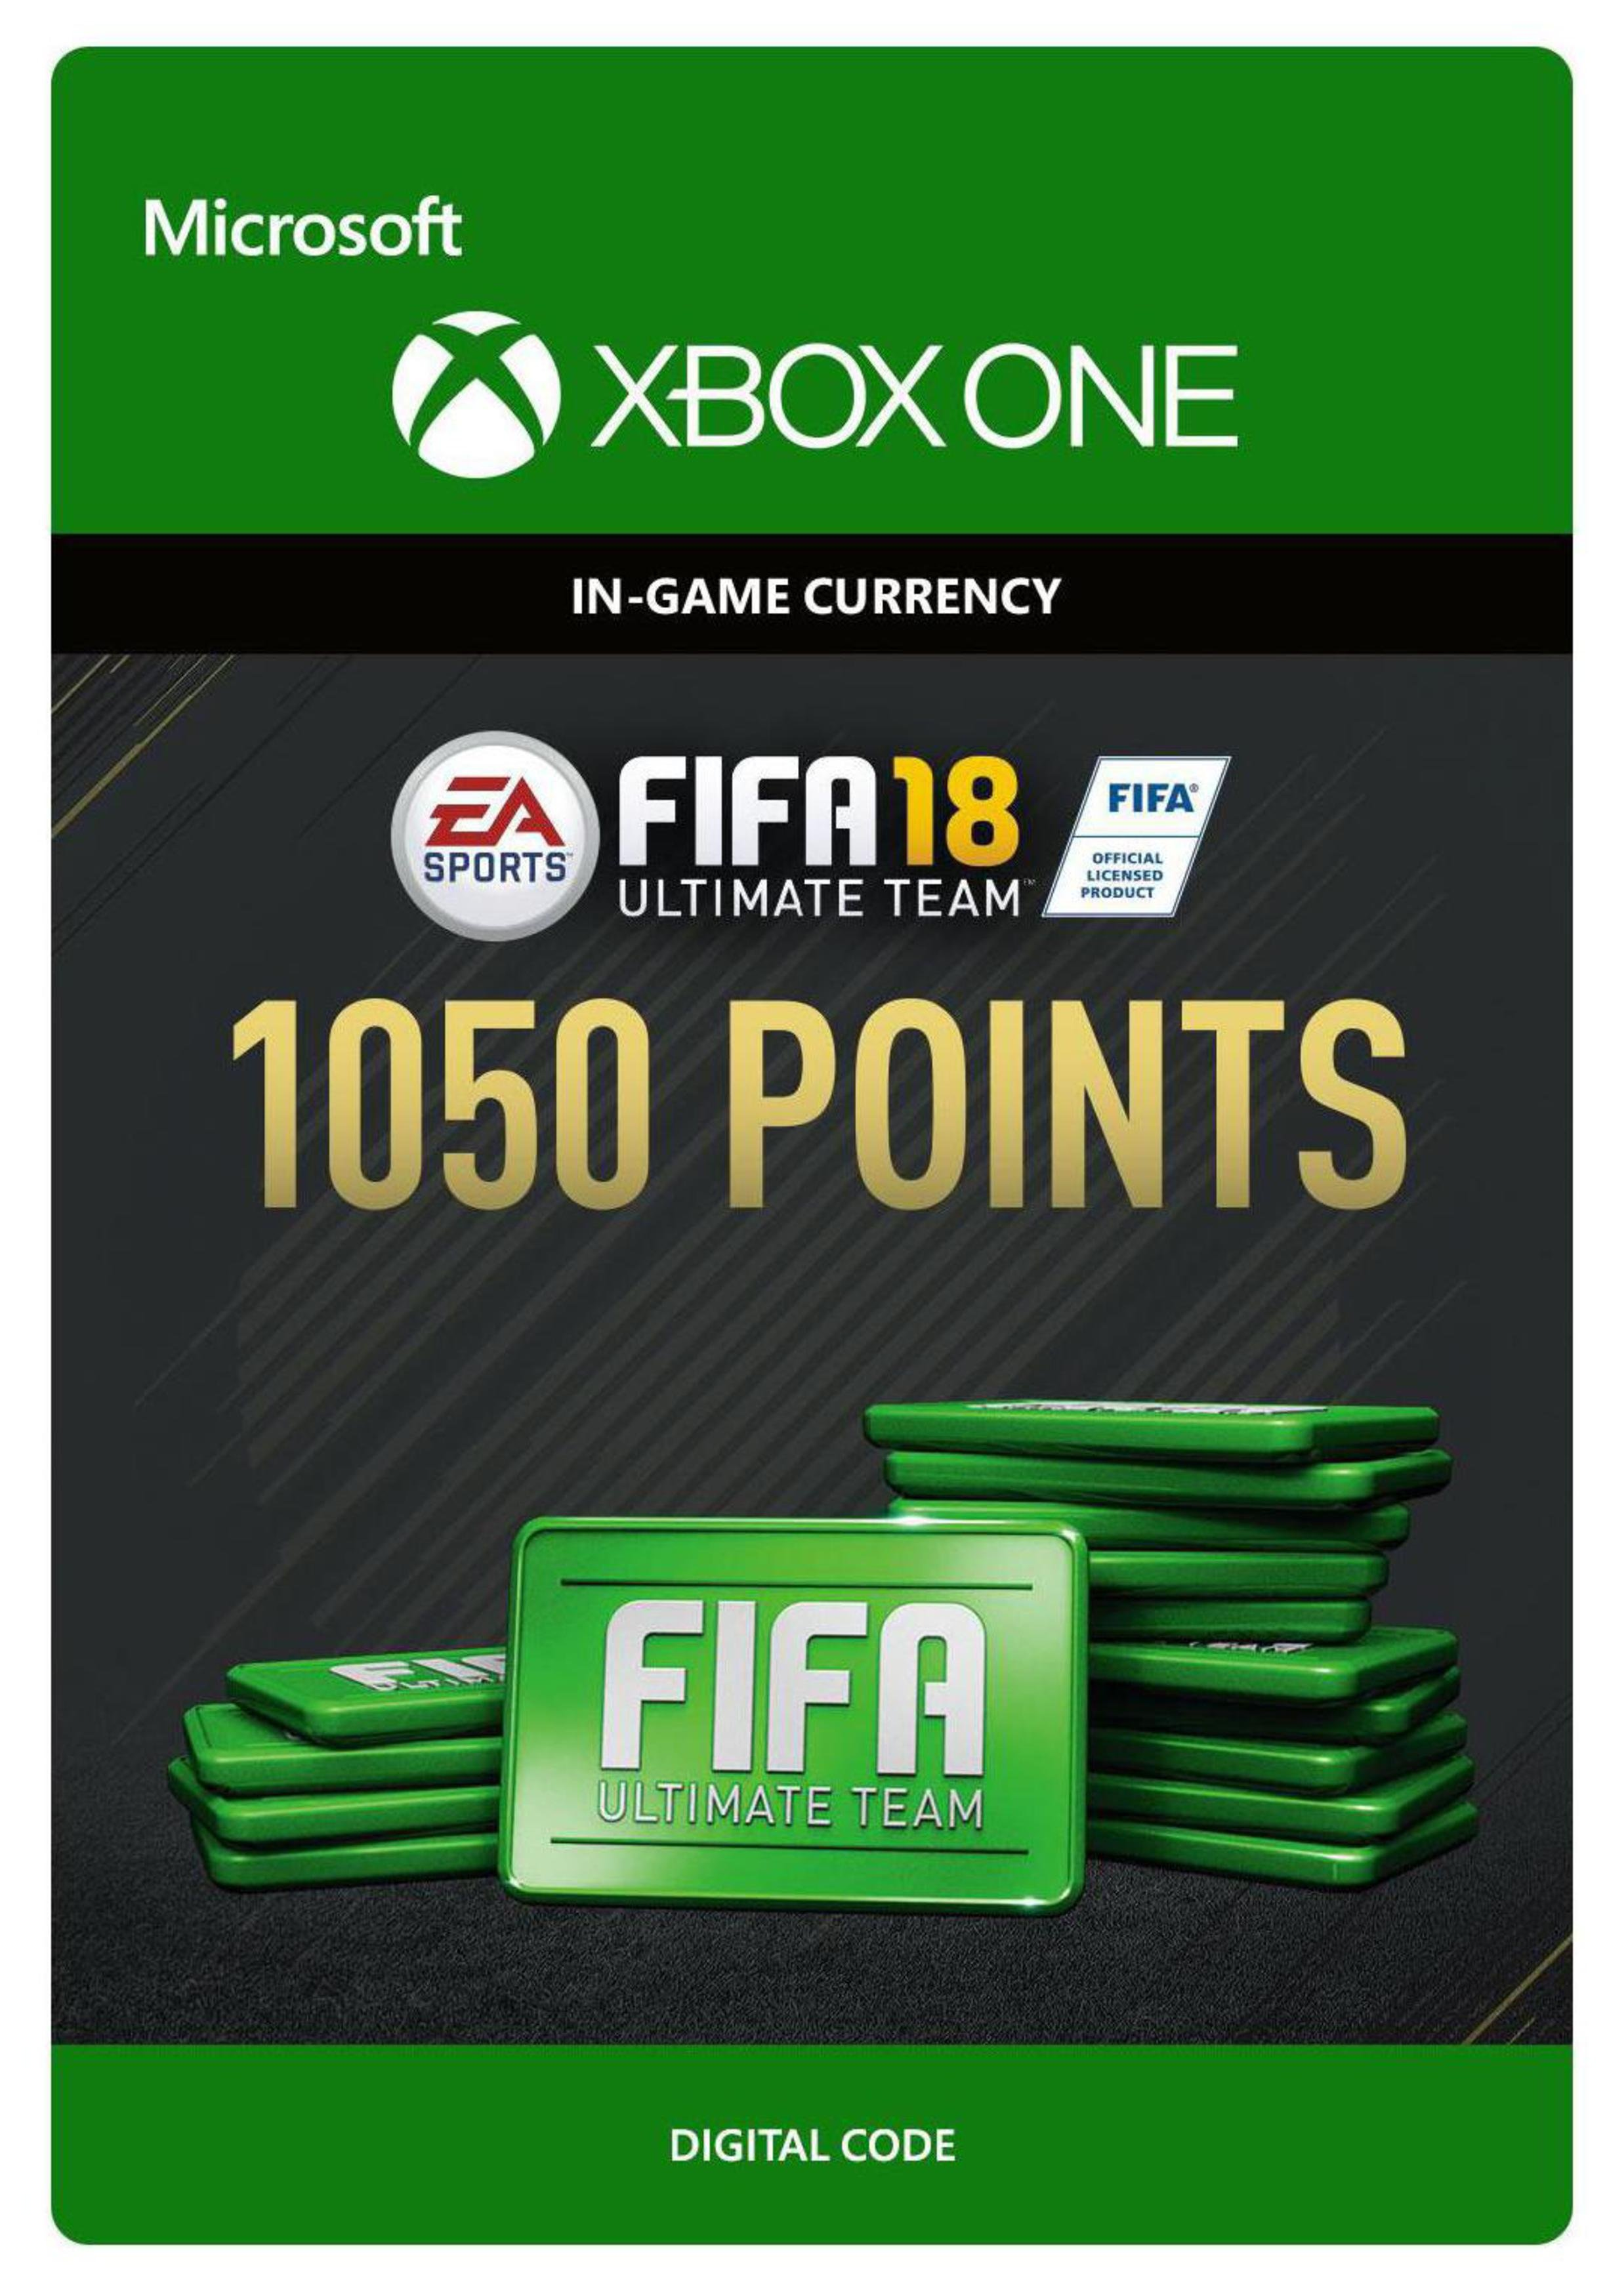 'Fifa 18 Ultimate Team - 1050 Points Xbox One Receipt Code